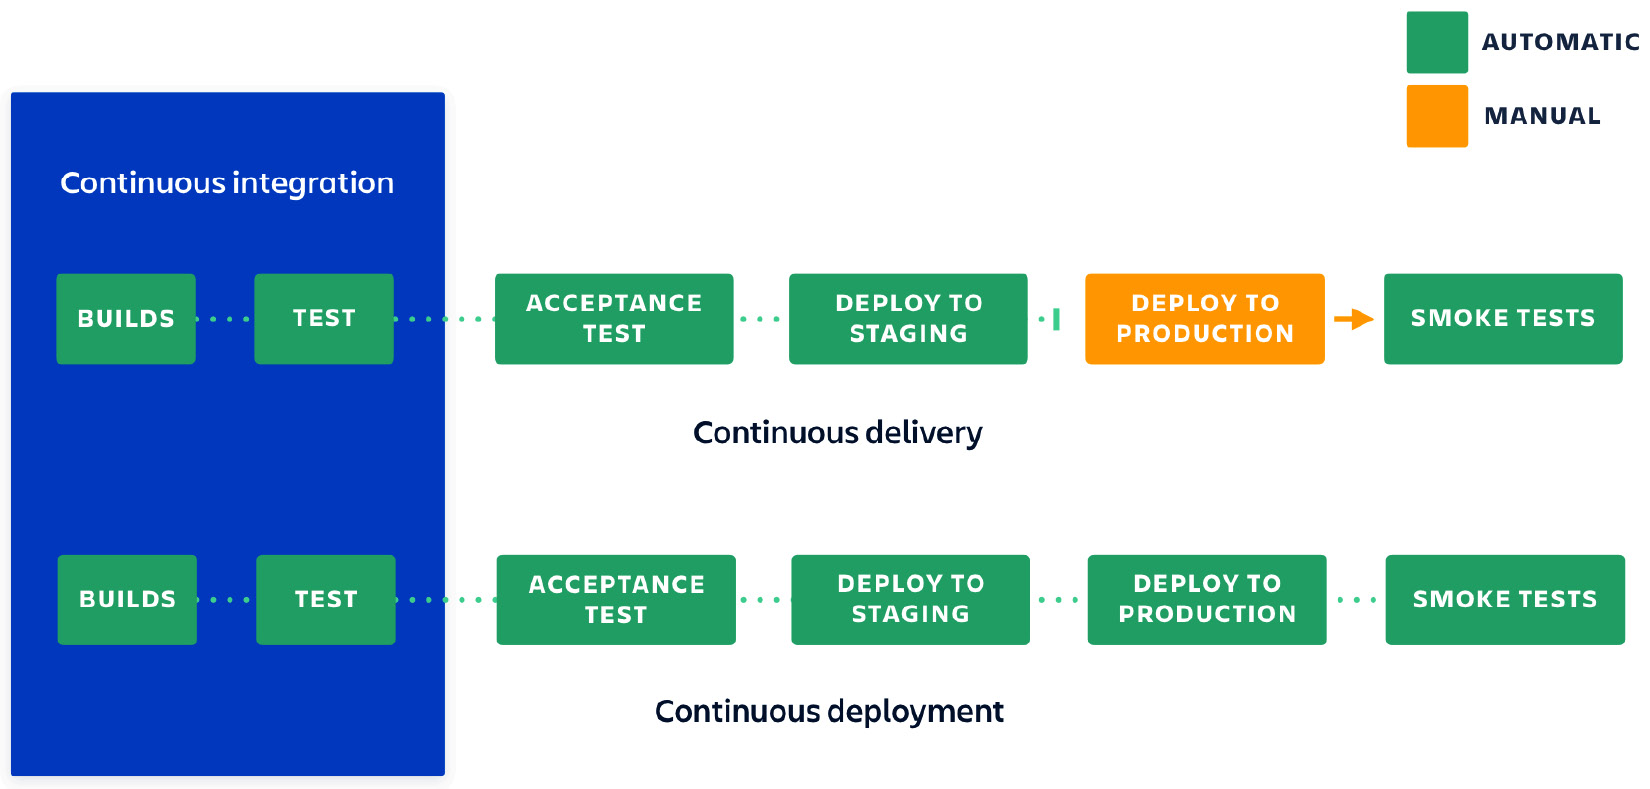 Figure 1.1 – Showing the differences between continuous integration, delivery, and deployment